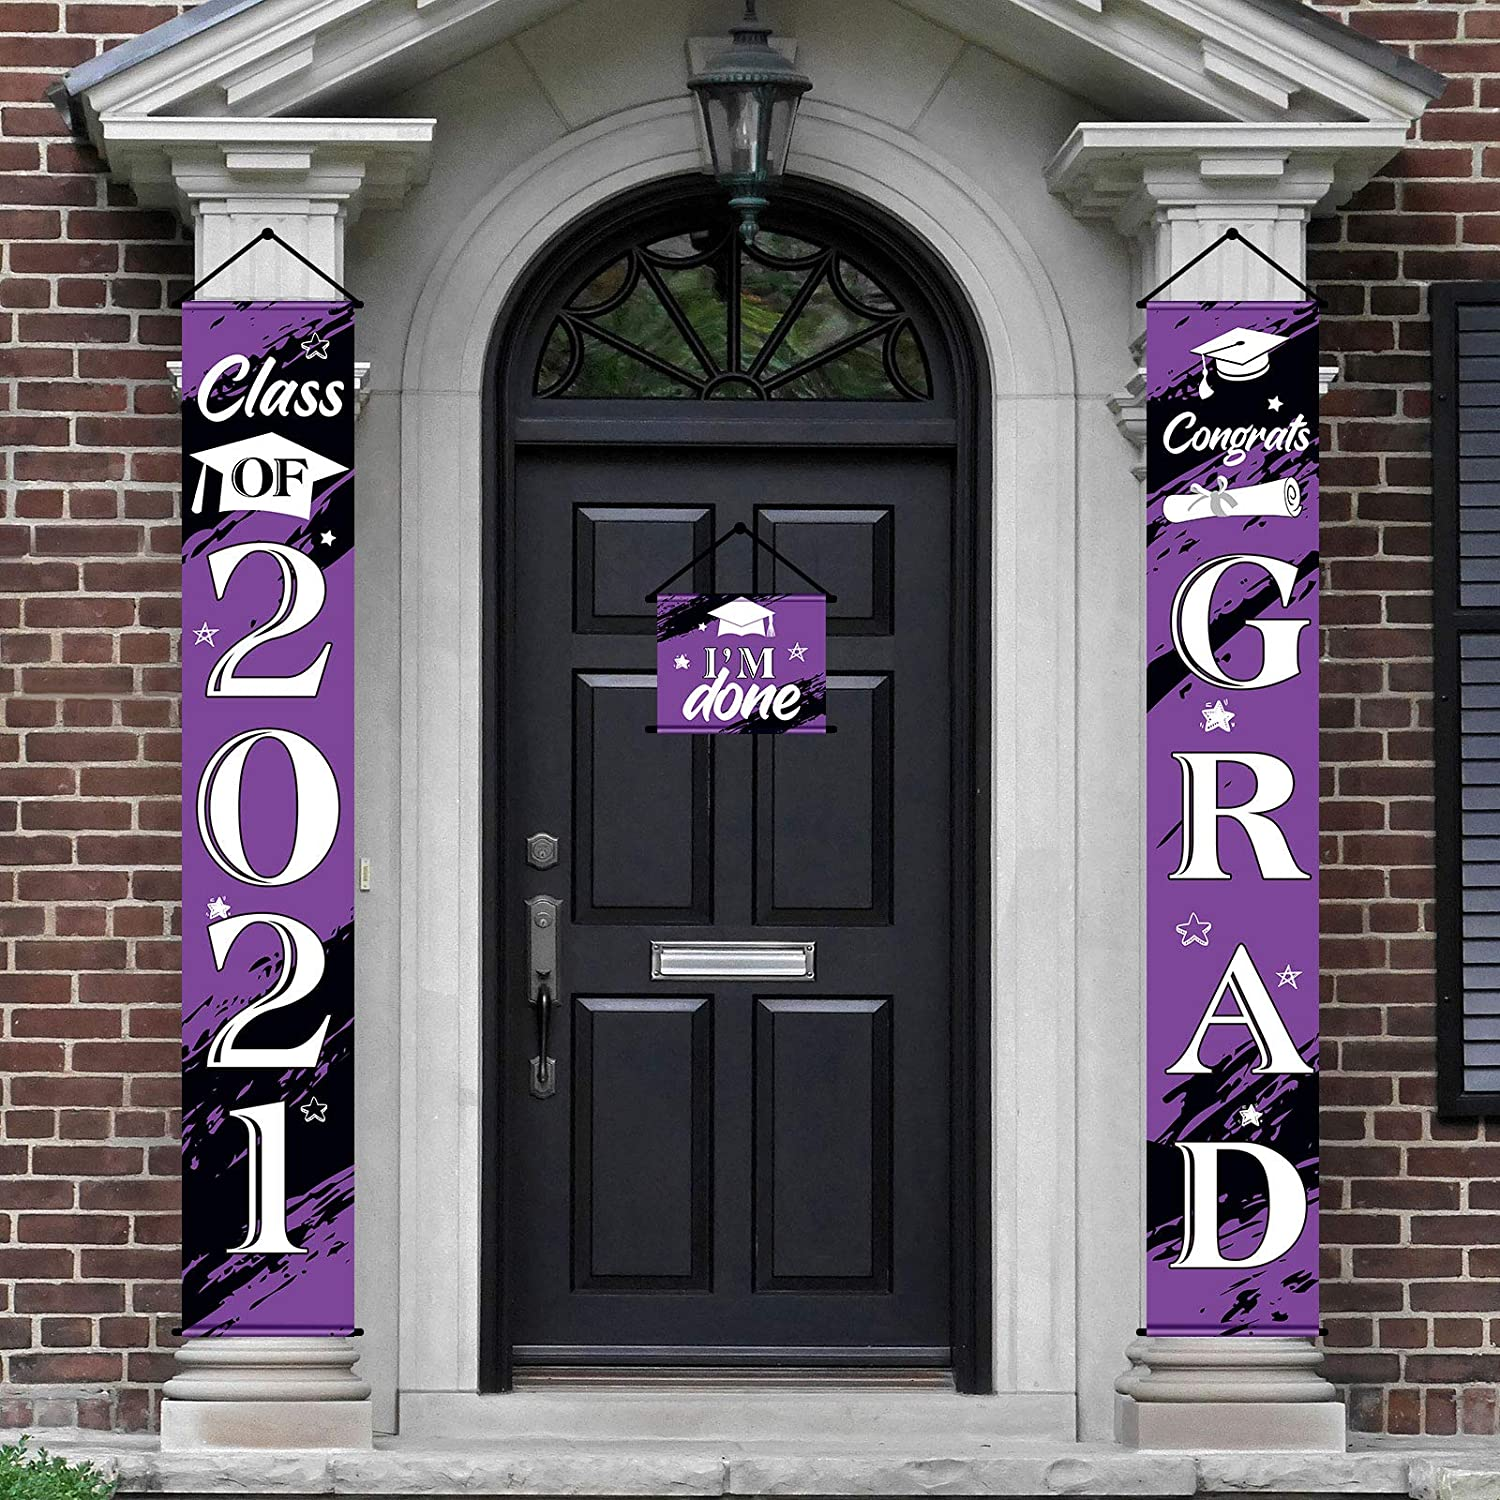 3 Pieces 2021 Graduation Banner Decorations, Class of 2021 Congrats Grad Porch Sign Hanging Banner Door Sign Welcome Decor Photo Props for College, High School Graduation Party Decorations (Purple)